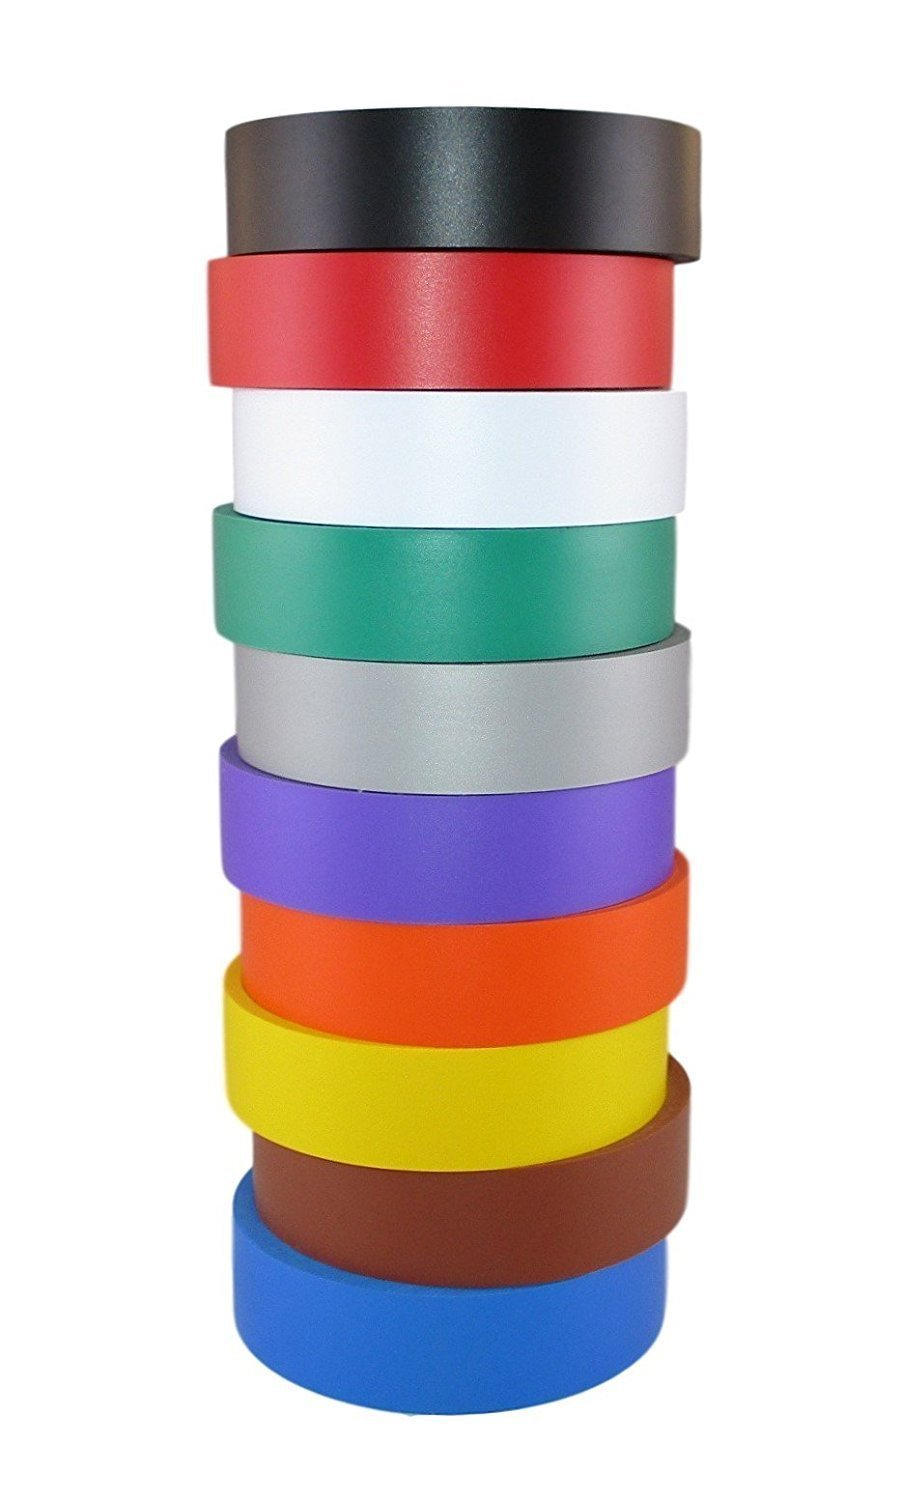 TradeGear Electrical Tape ASSORTED MATTE Rainbow Colors - 10 Pk Waterproof, Flame Retardant, Strong Rubber Based Adhesive, UL Listed - Rated for Max. 600V and 80oC Use -Measures 60' x 3/4'' x 0.07'' by TradeGear